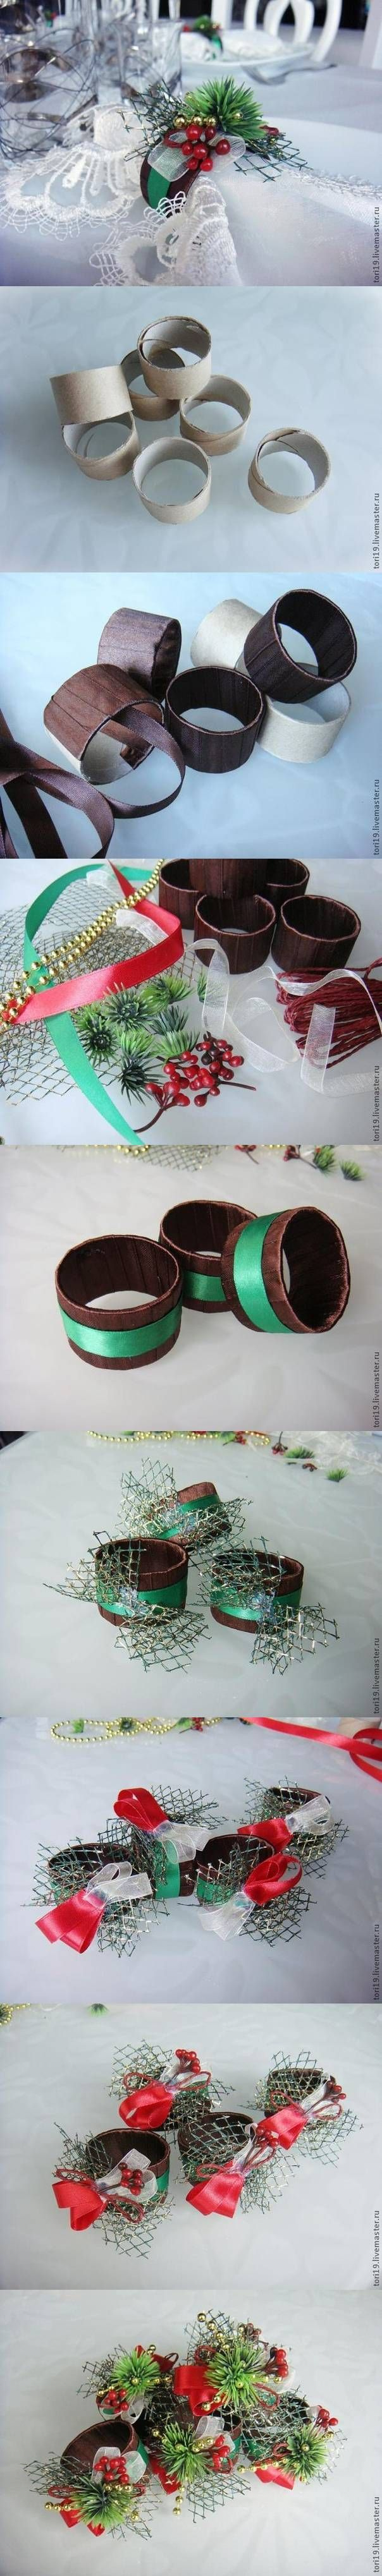 Argolas de guardanapo http://www.usefuldiy.com/diy-toilet-roll-custom-napkin-rings/